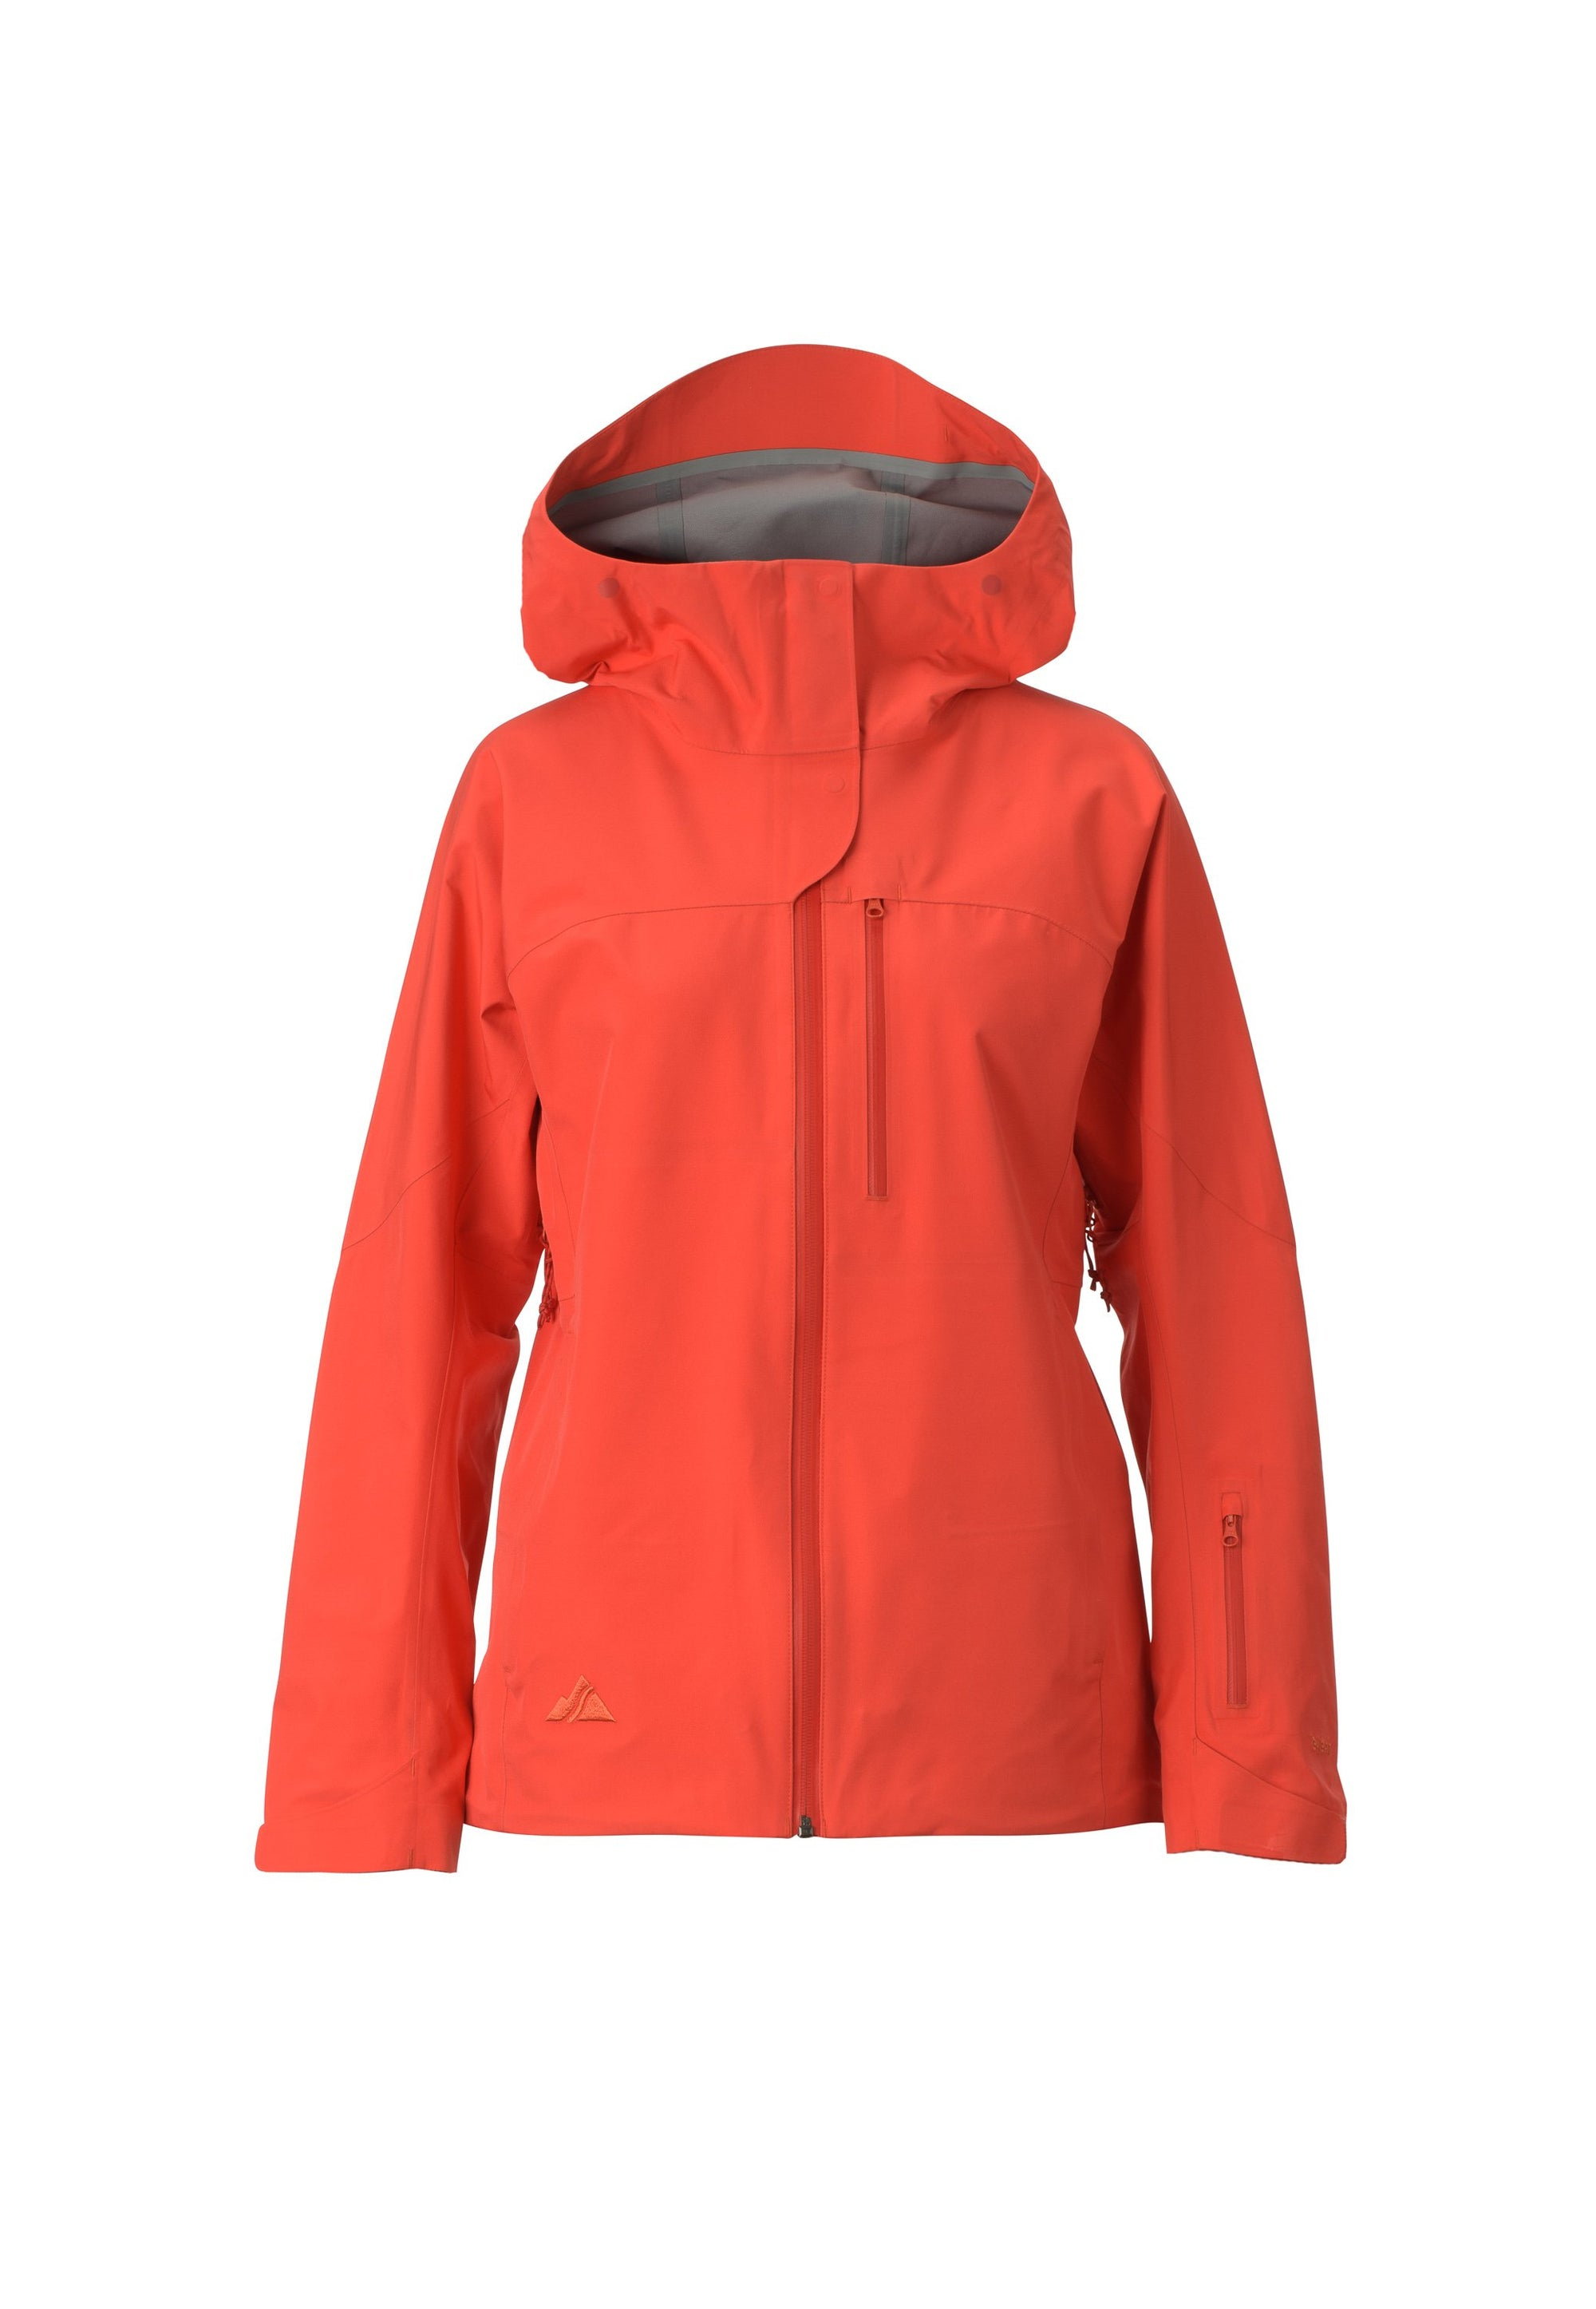 candy red 2019 women's meadow event shell skiing and snowboarding jacket from strafe outerwear